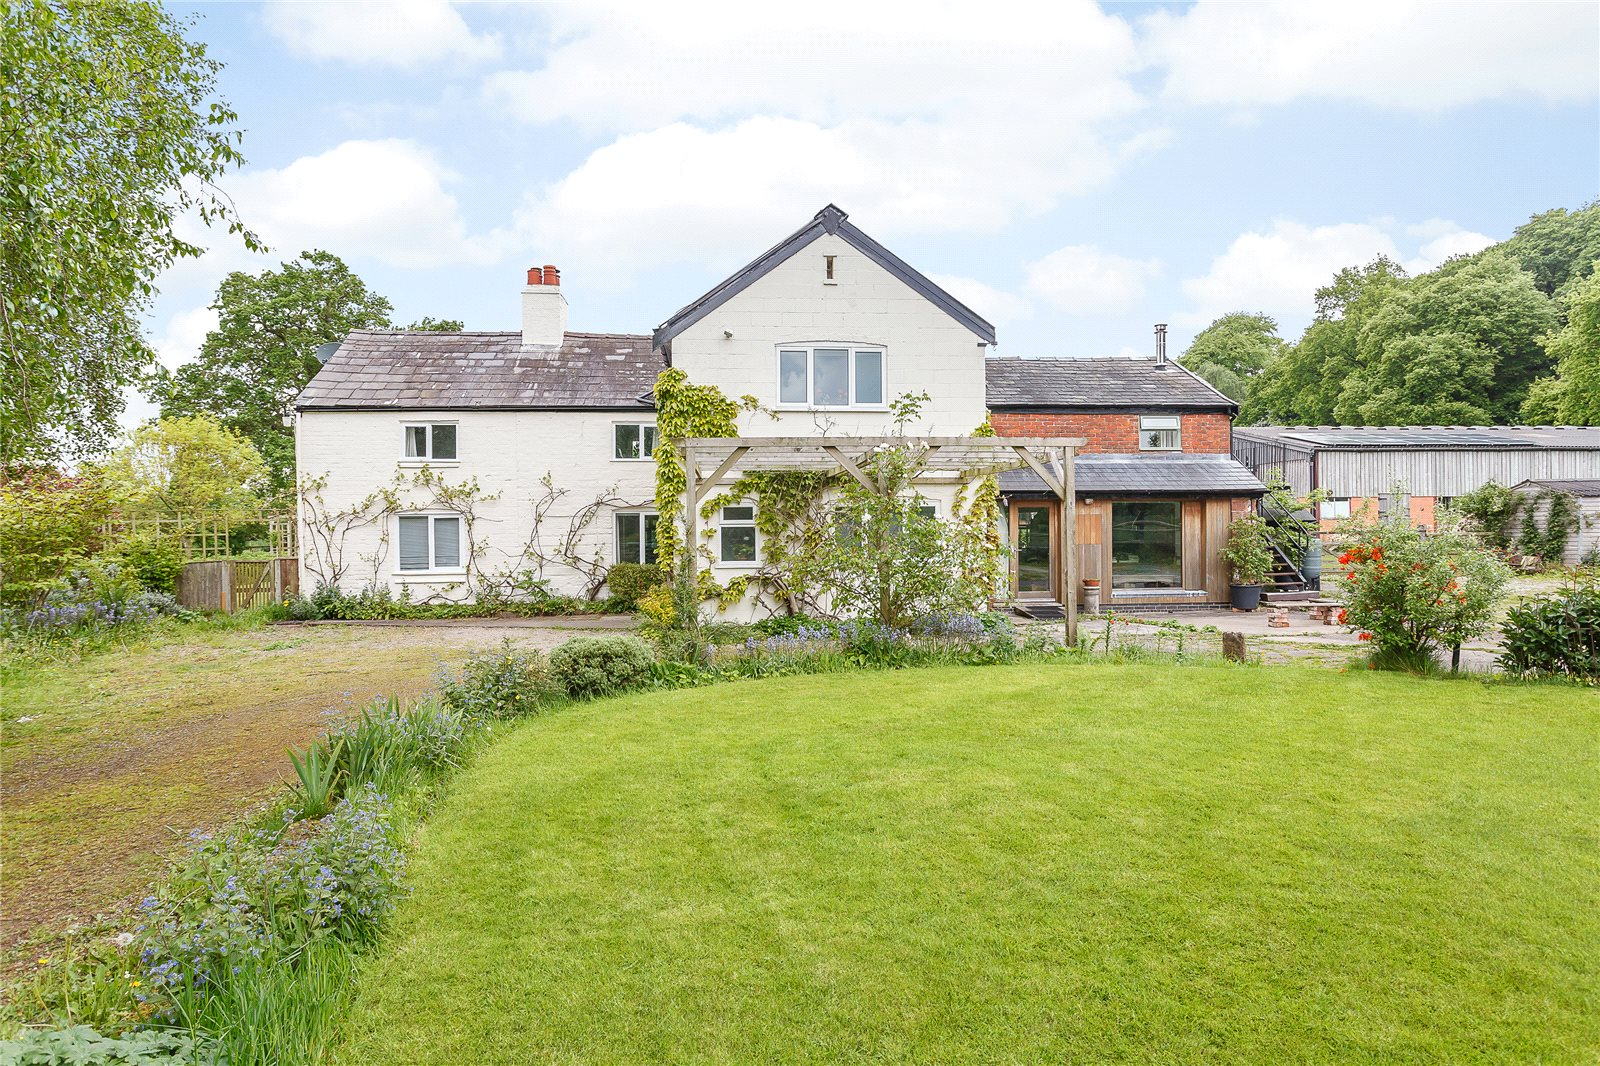 Single Family Home for Sale at Simmonds Hill, Manley, Frodsham, WA6 Frodsham, England